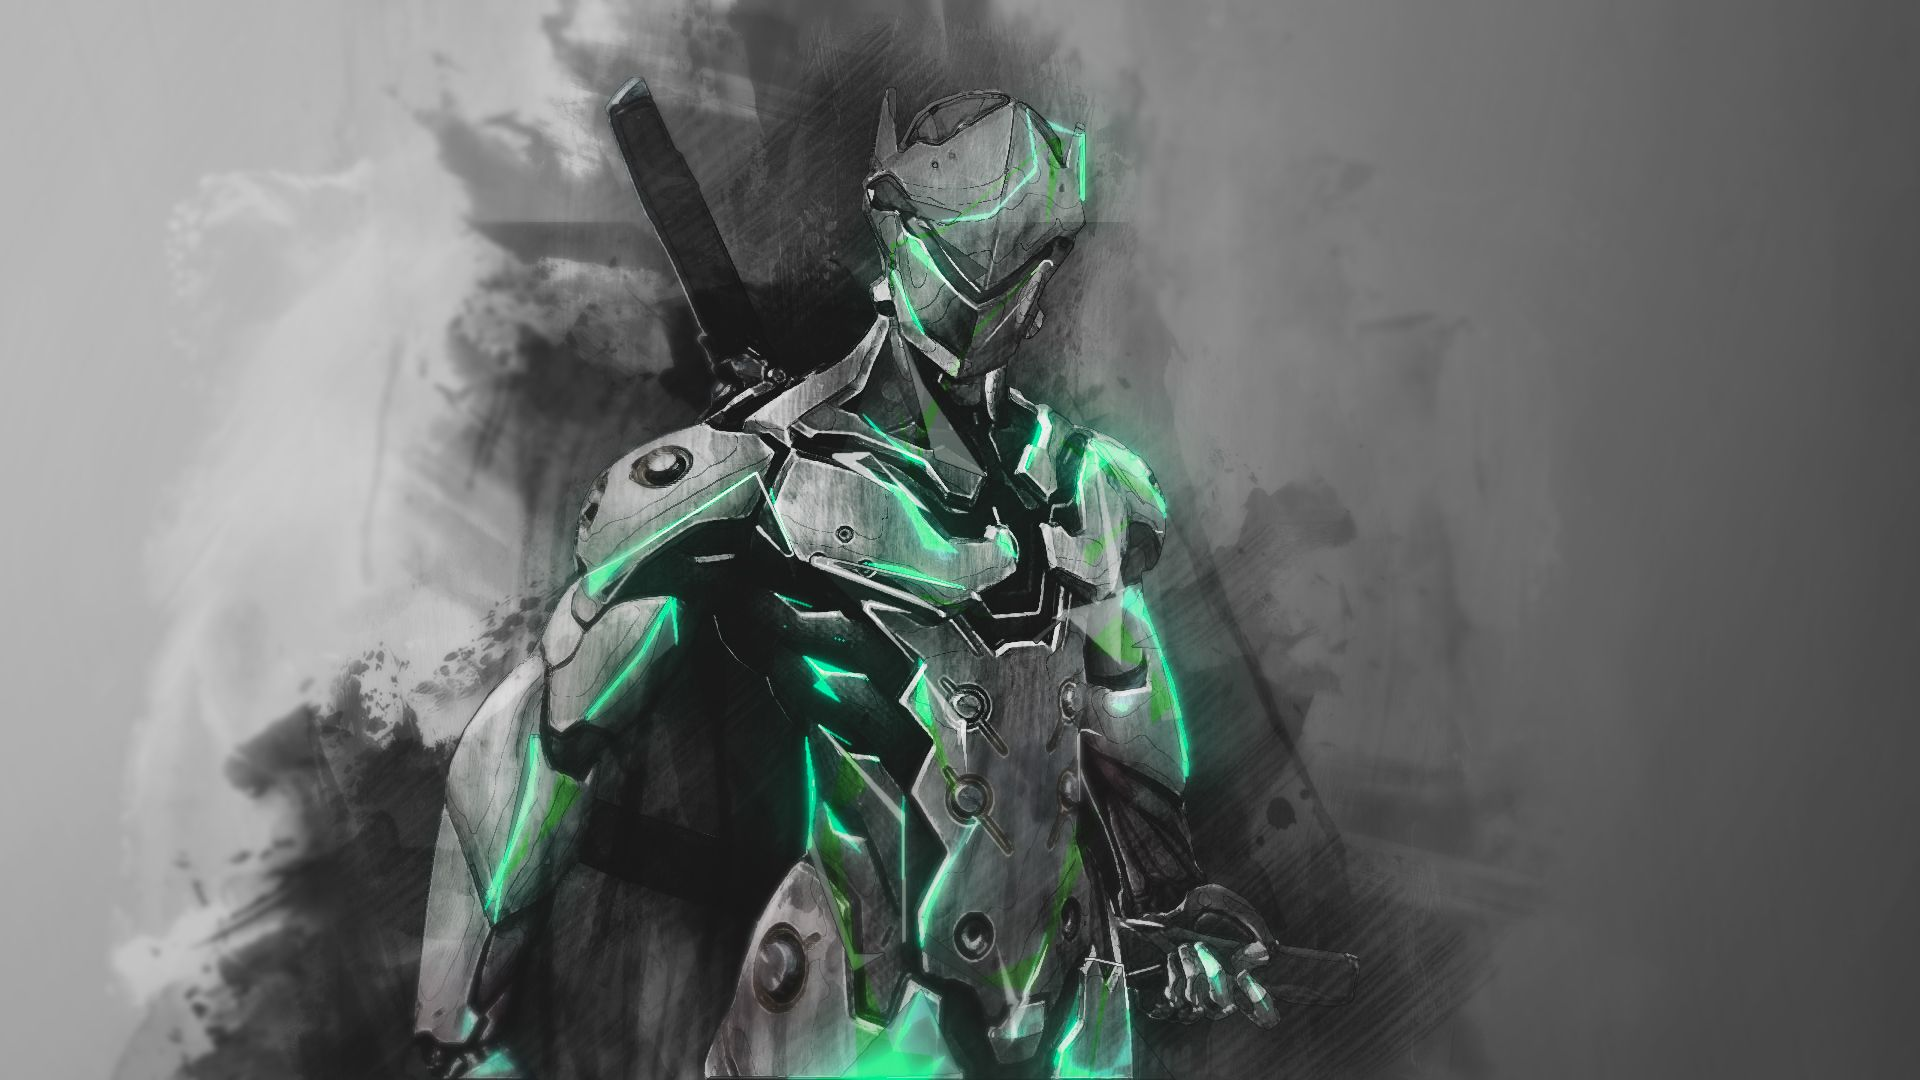 Genji Overwatch Wallpaper by RaycoreTheCrawler on